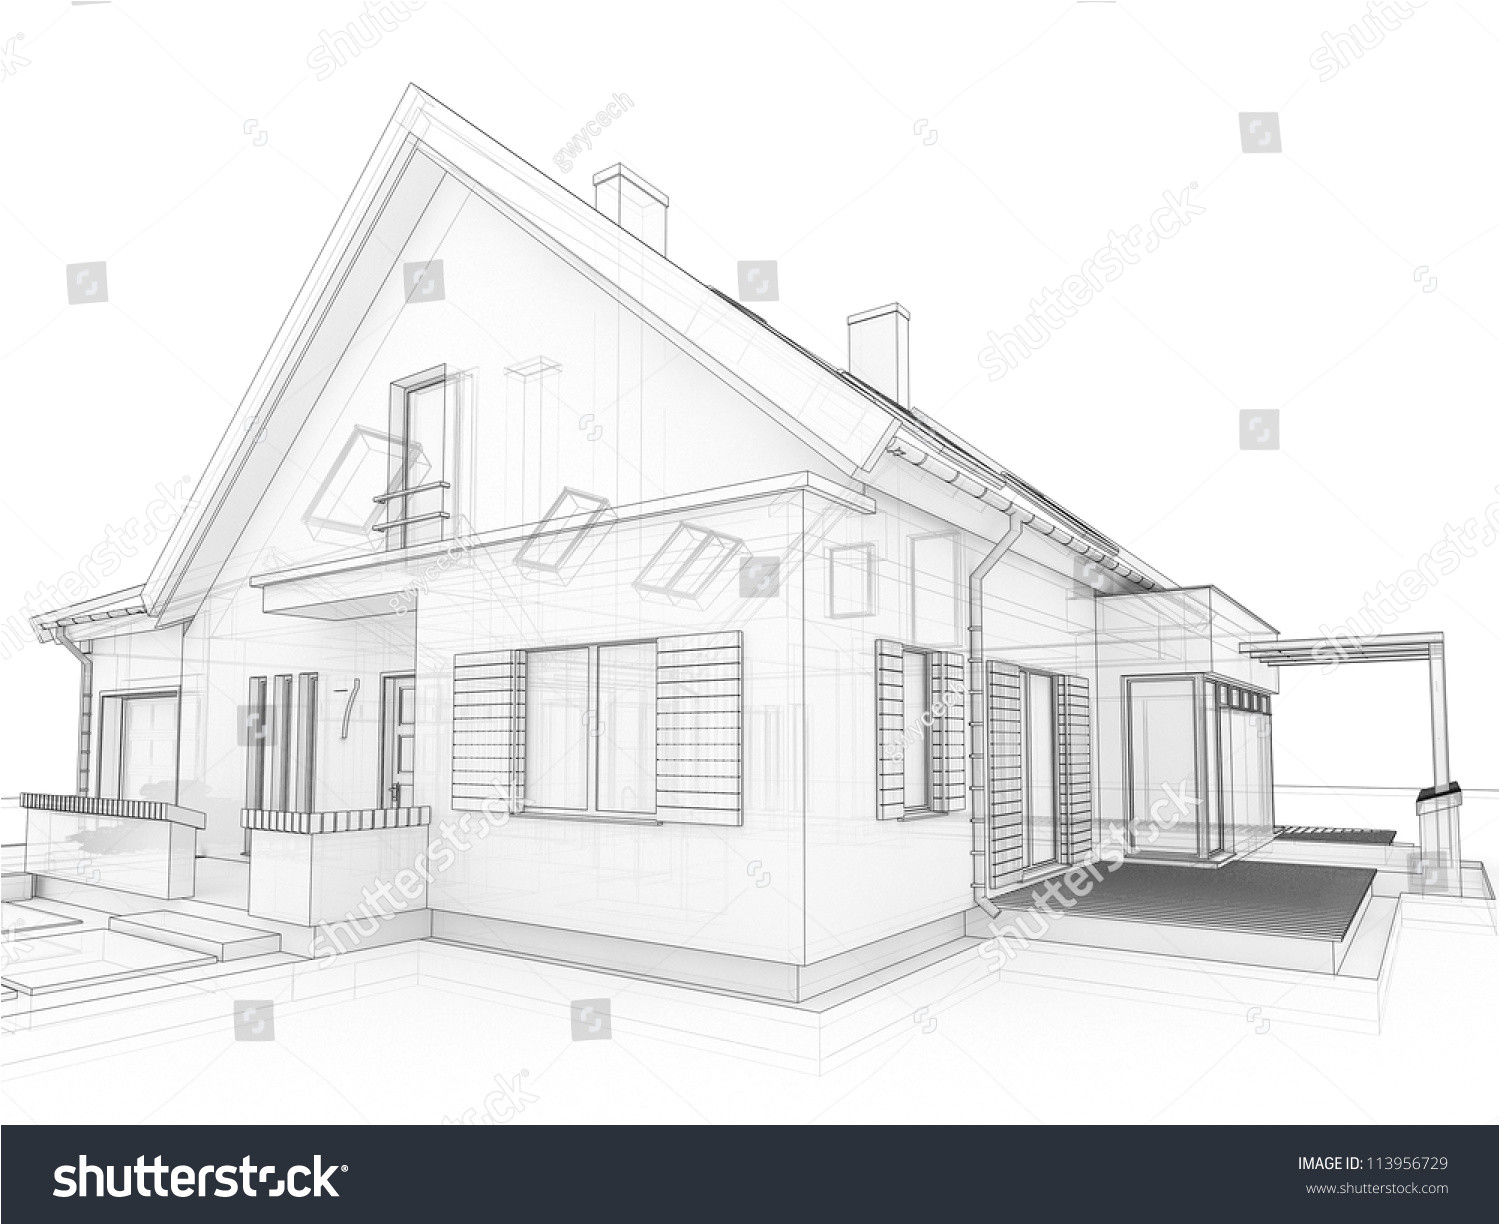 stock photo computer generated transparent house design visualization in drawing style